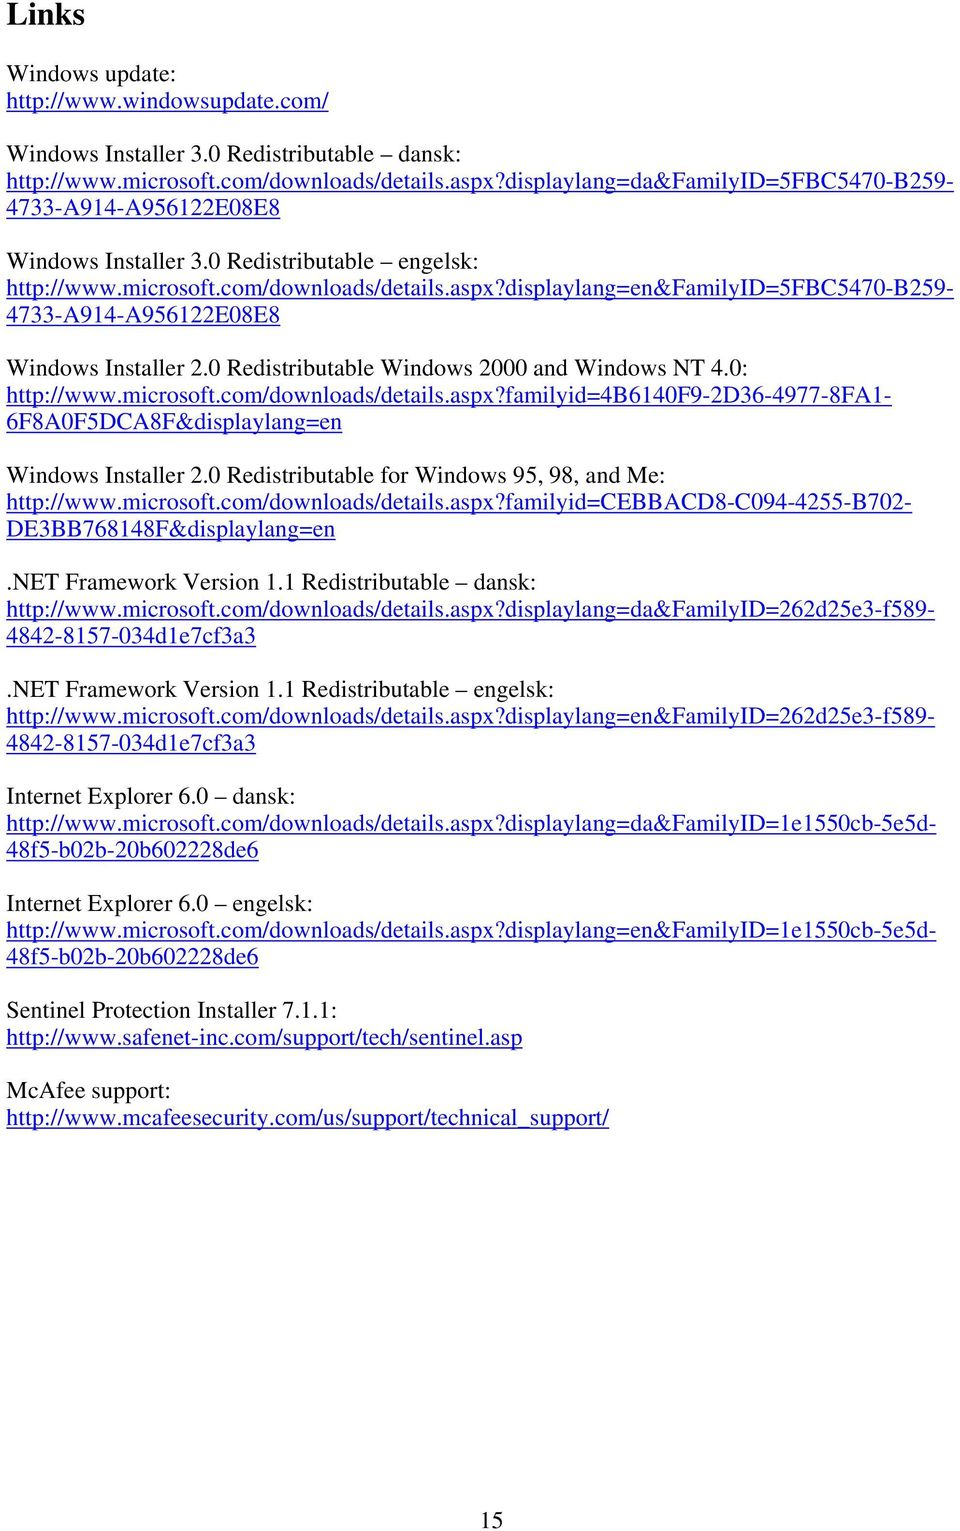 displaylang=en&familyid=5fbc5470-b259-4733-a914-a956122e08e8 Windows Installer 2.0 Redistributable Windows 2000 and Windows NT 4.0: http://www.microsoft.com/downloads/details.aspx?